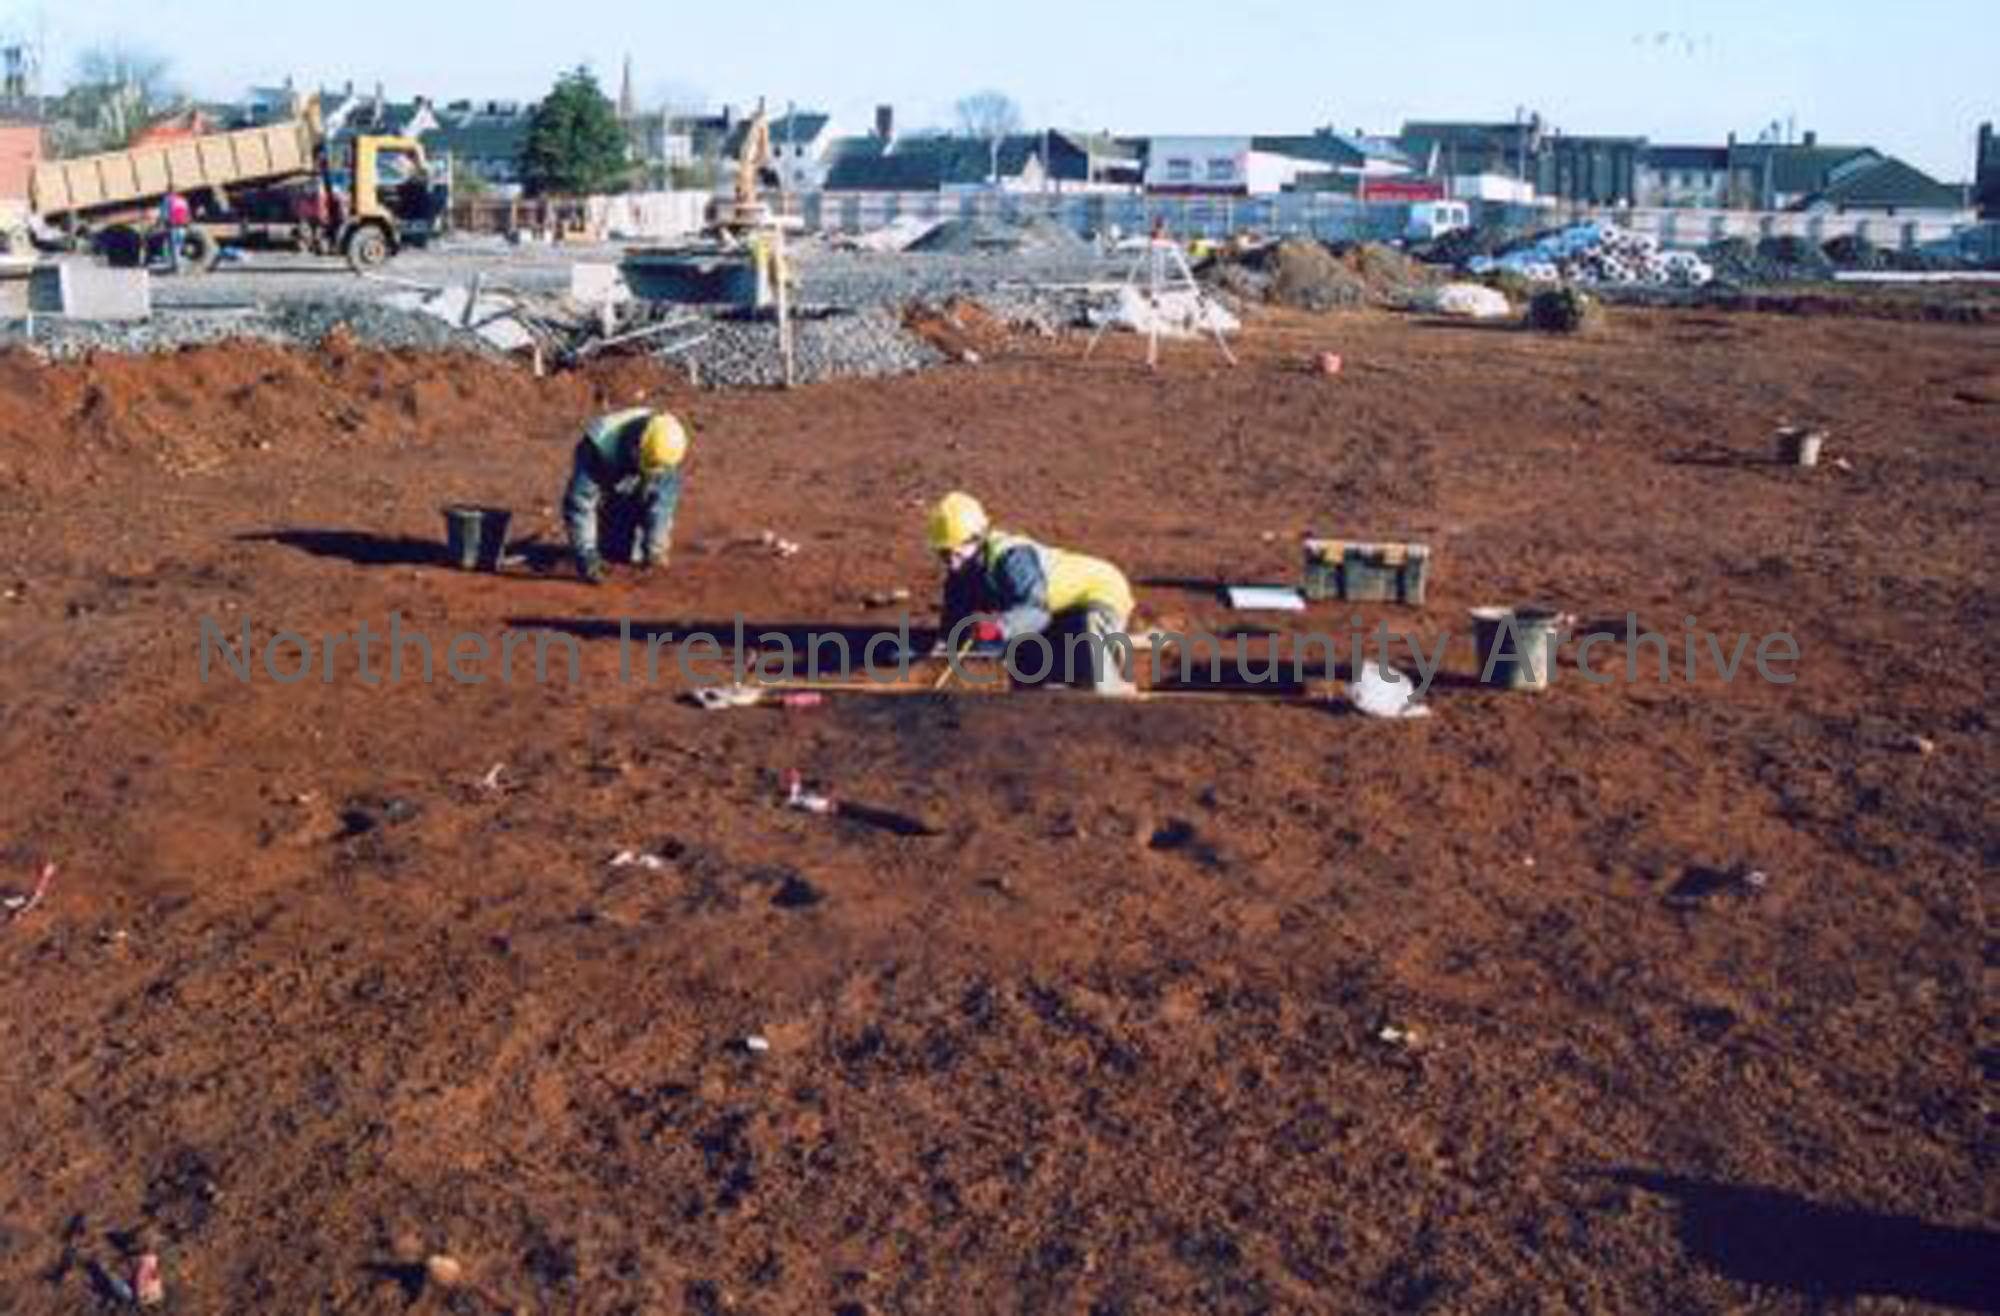 ADS archaeologists excavating the Neolithic settlement on the site of Tesco's Ballymoney (4756)